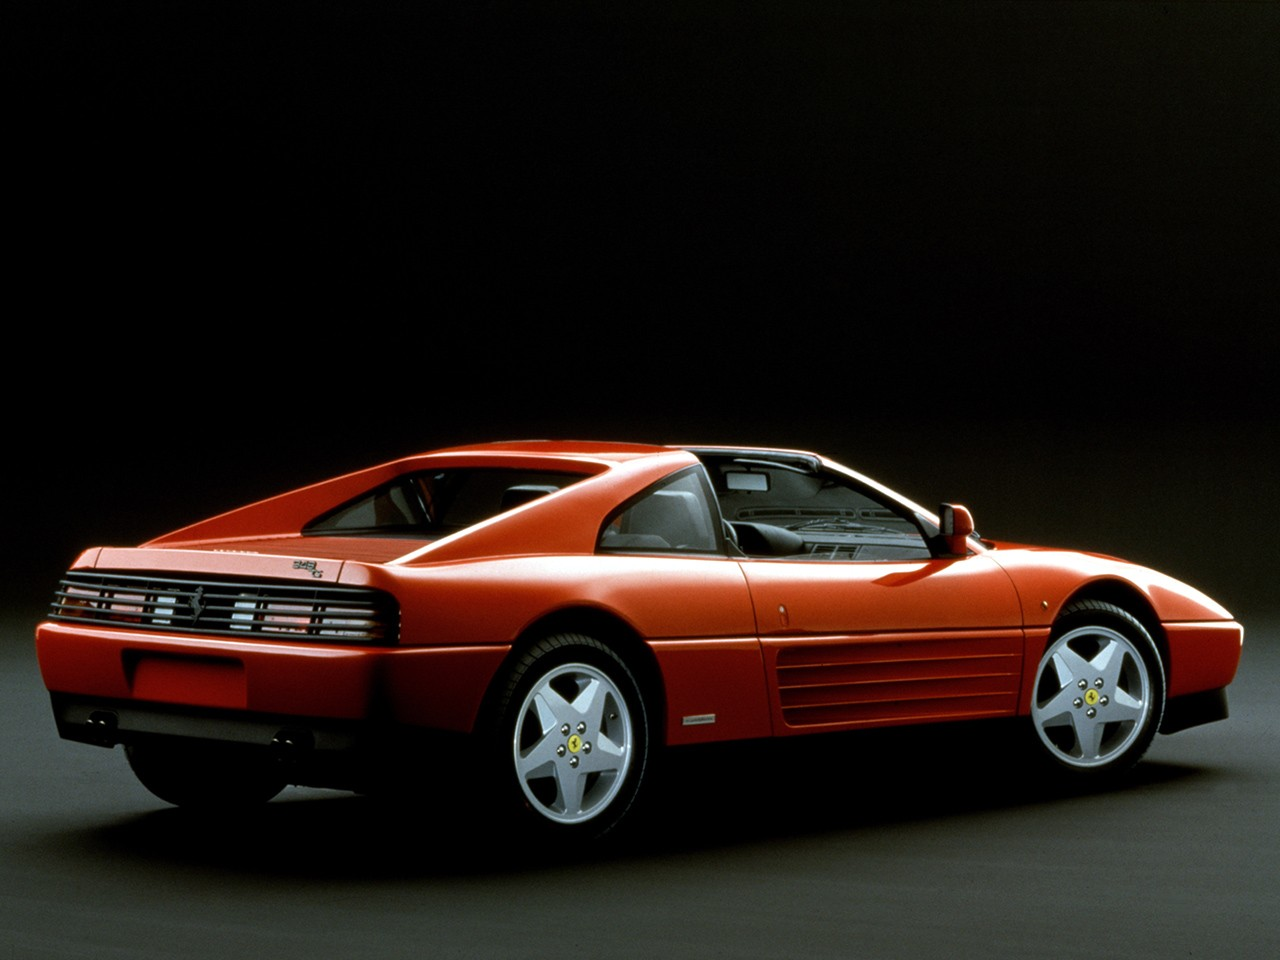 ferrari 348 ts specs 1989 1990 1991 1992 1993 autoevolution. Black Bedroom Furniture Sets. Home Design Ideas